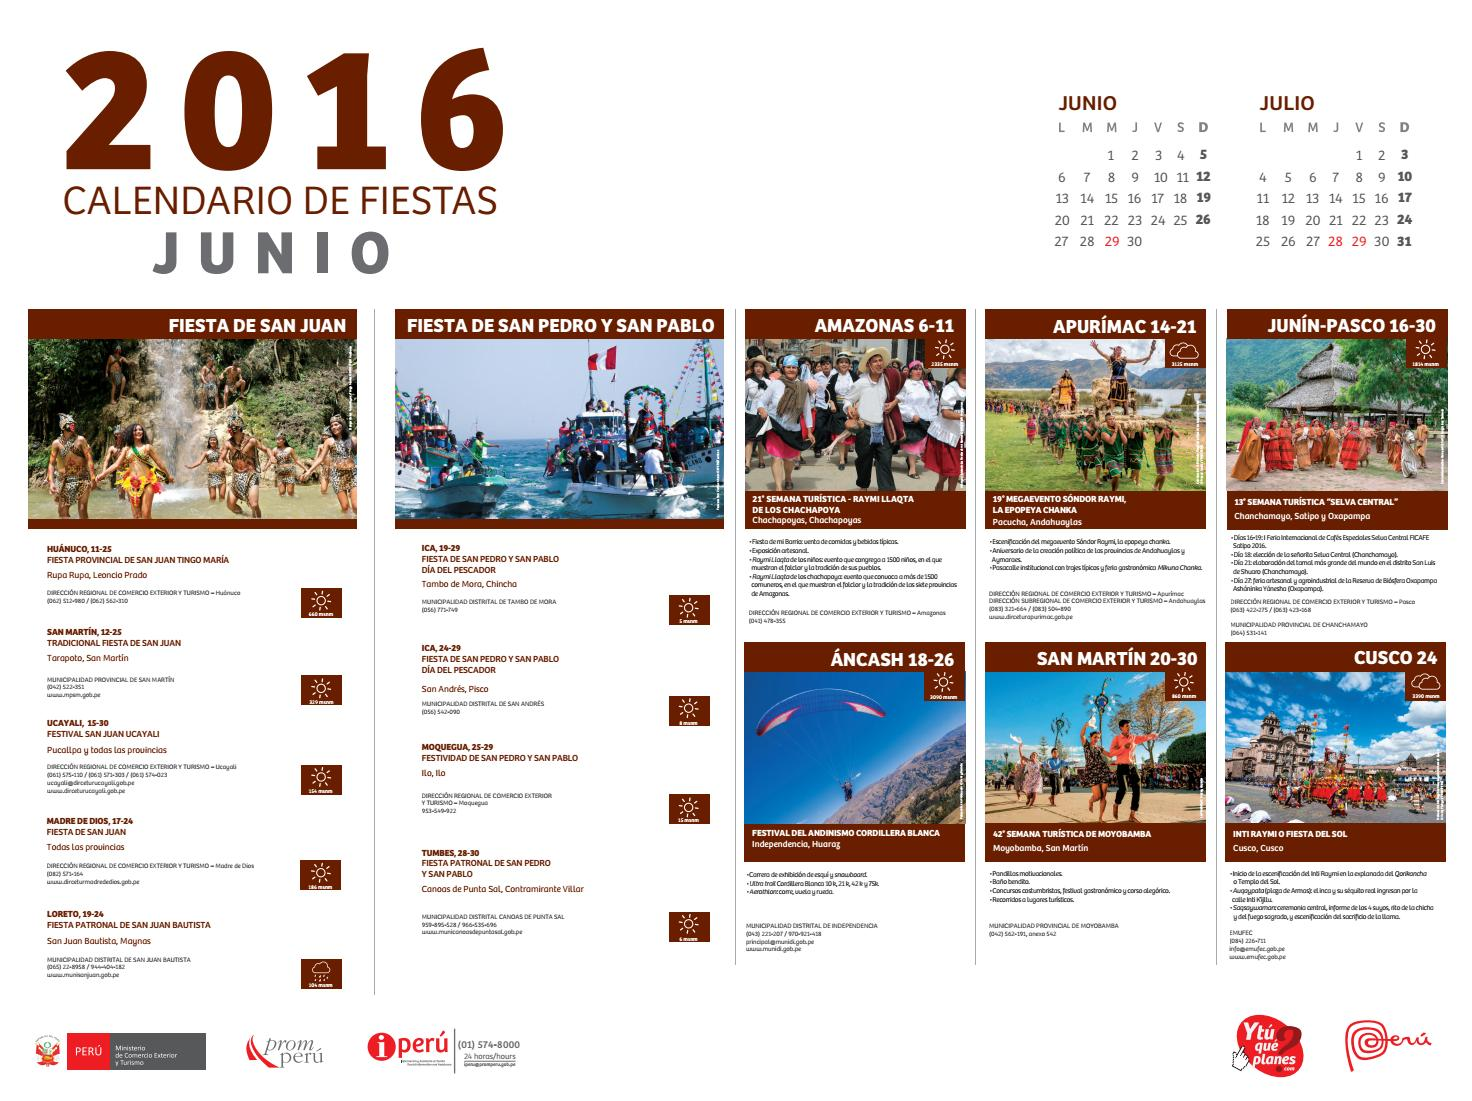 Junio 2016 calendario de eventos junio 2016 calendario de for Calendario junio 2016 para imprimir